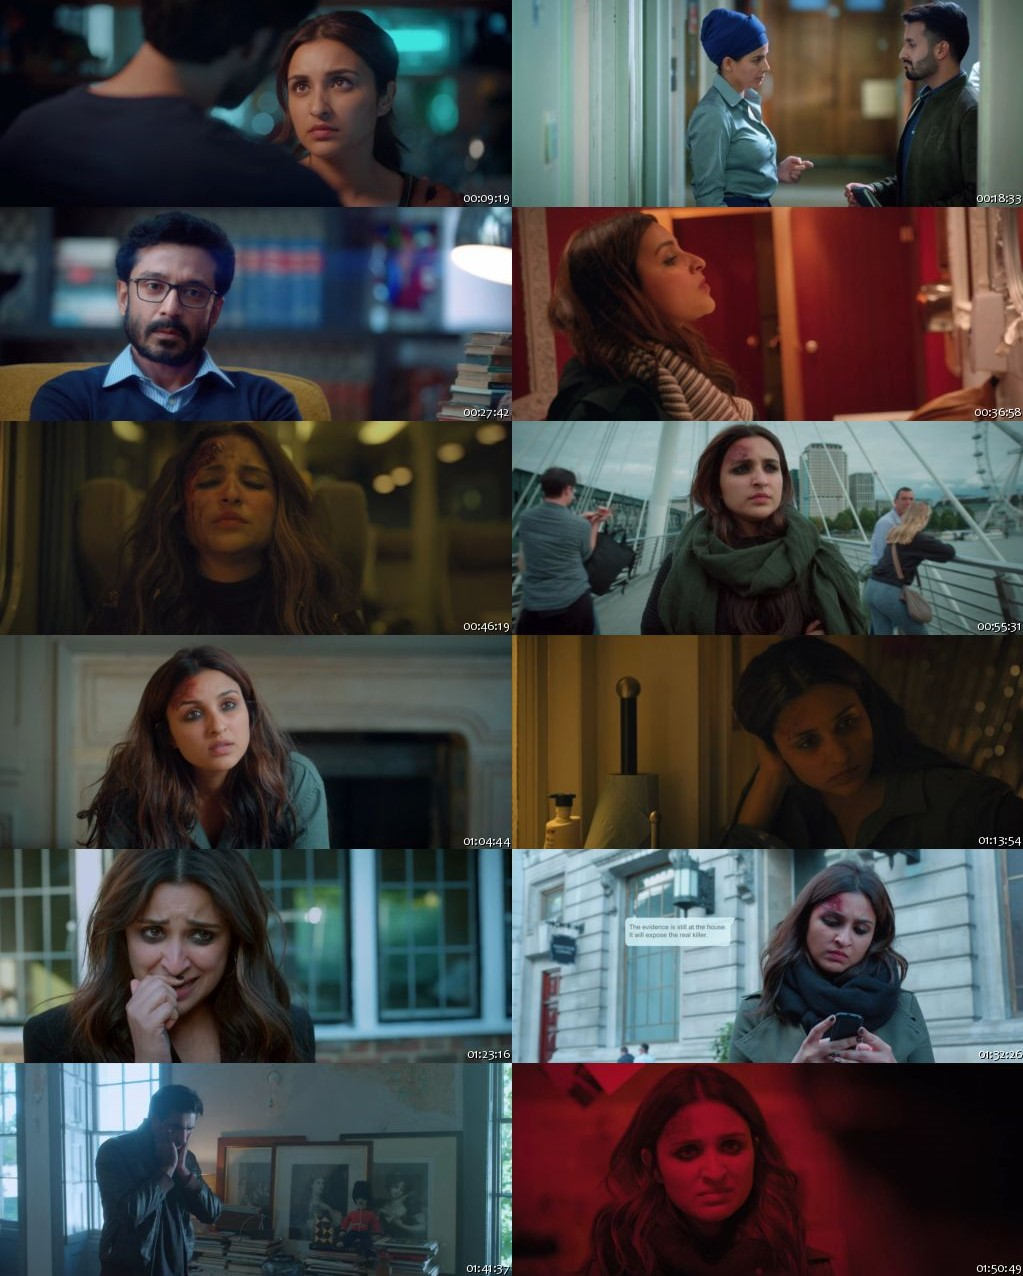 The Girl on the Train 2021 Full Hindi Movie Online Watch HDRip 720p